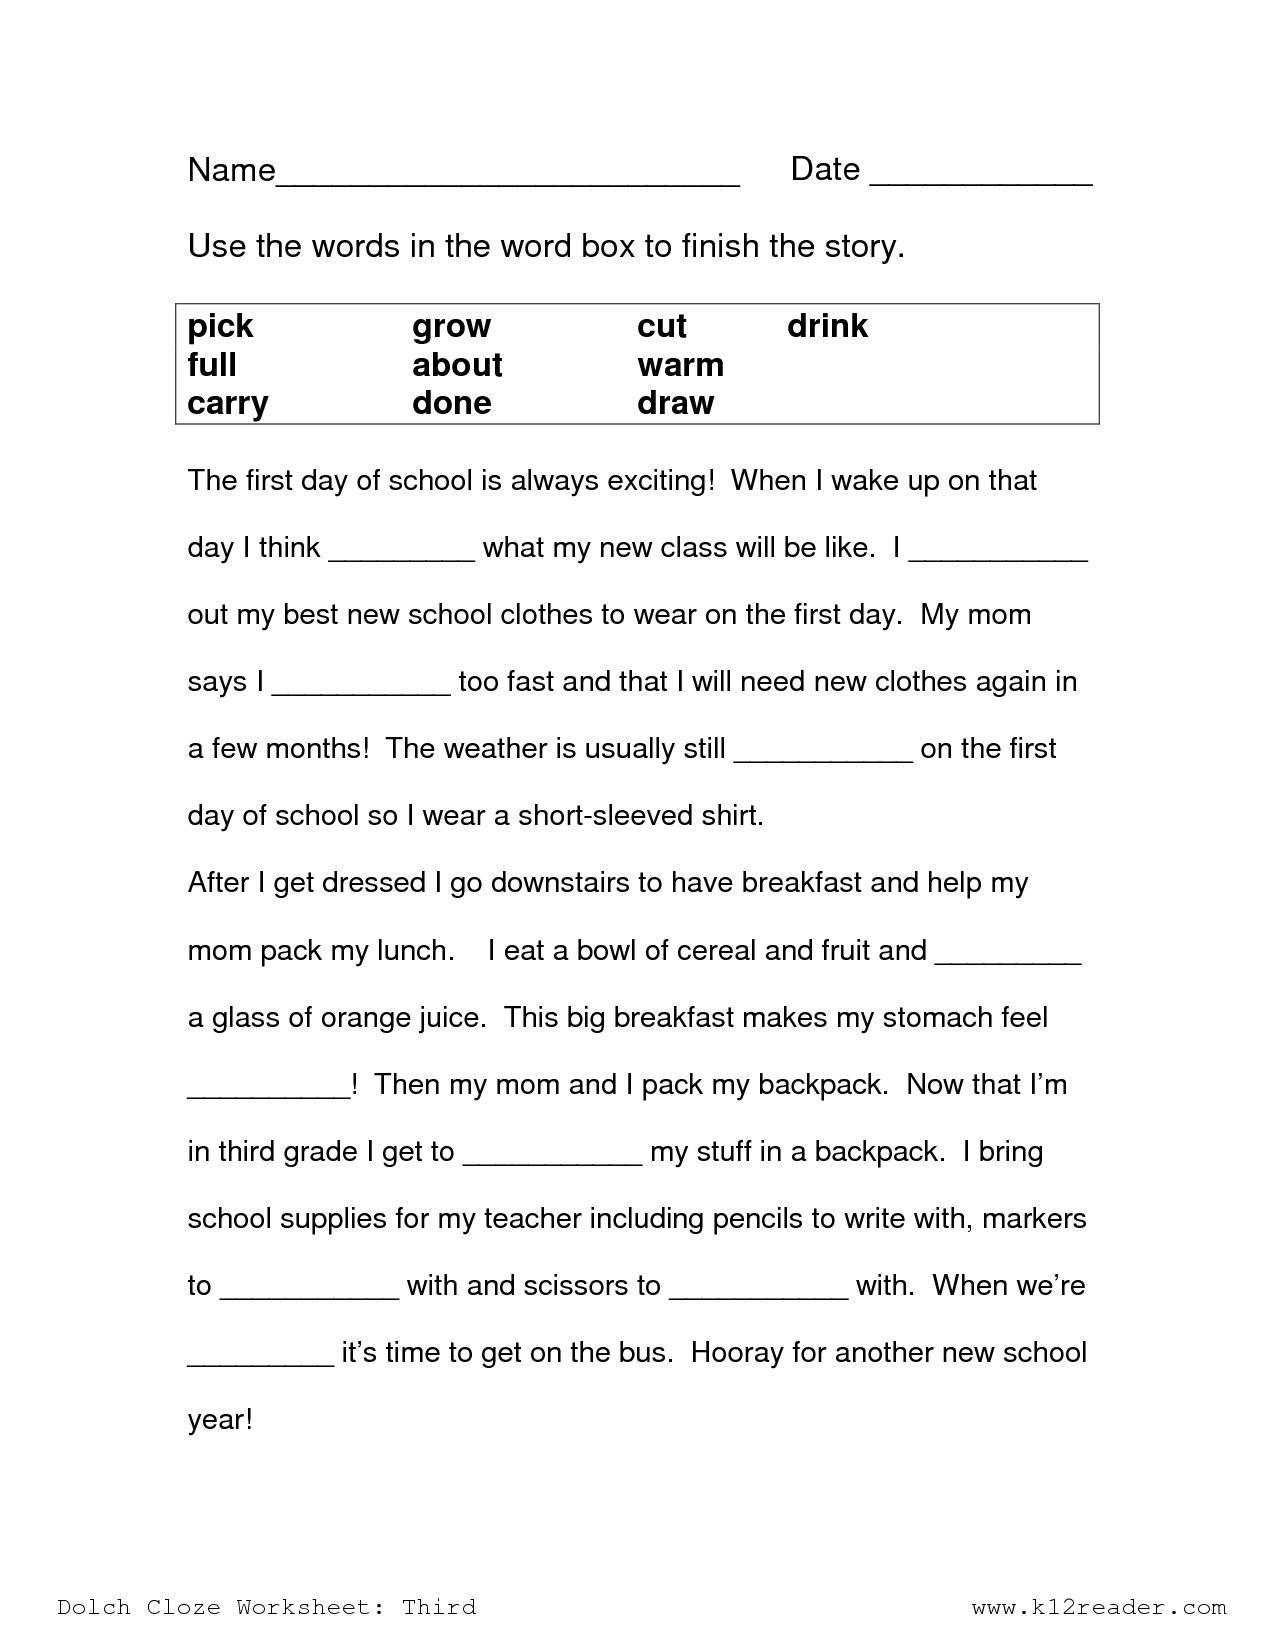 Free Worksheet Free Printable Reading Comprehension Worksheets For 4th Grade reading paragraphs for 3rd grade laptuoso free printable worksheets word lists and laptuoso